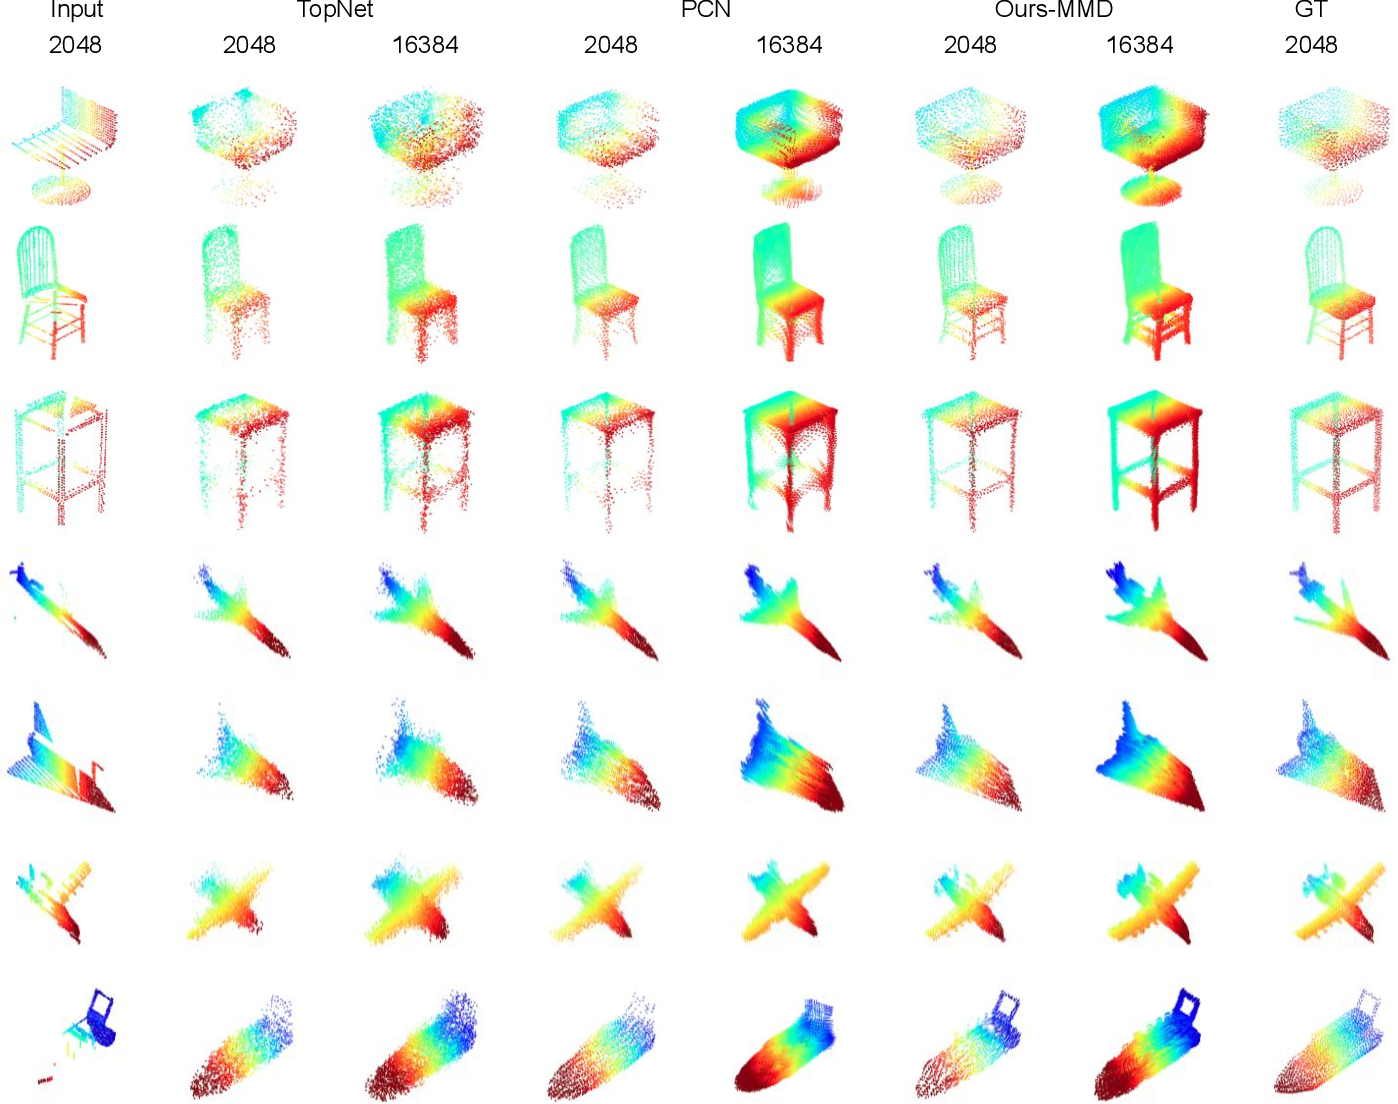 Figure 4 for Point Cloud Completion by Learning Shape Priors